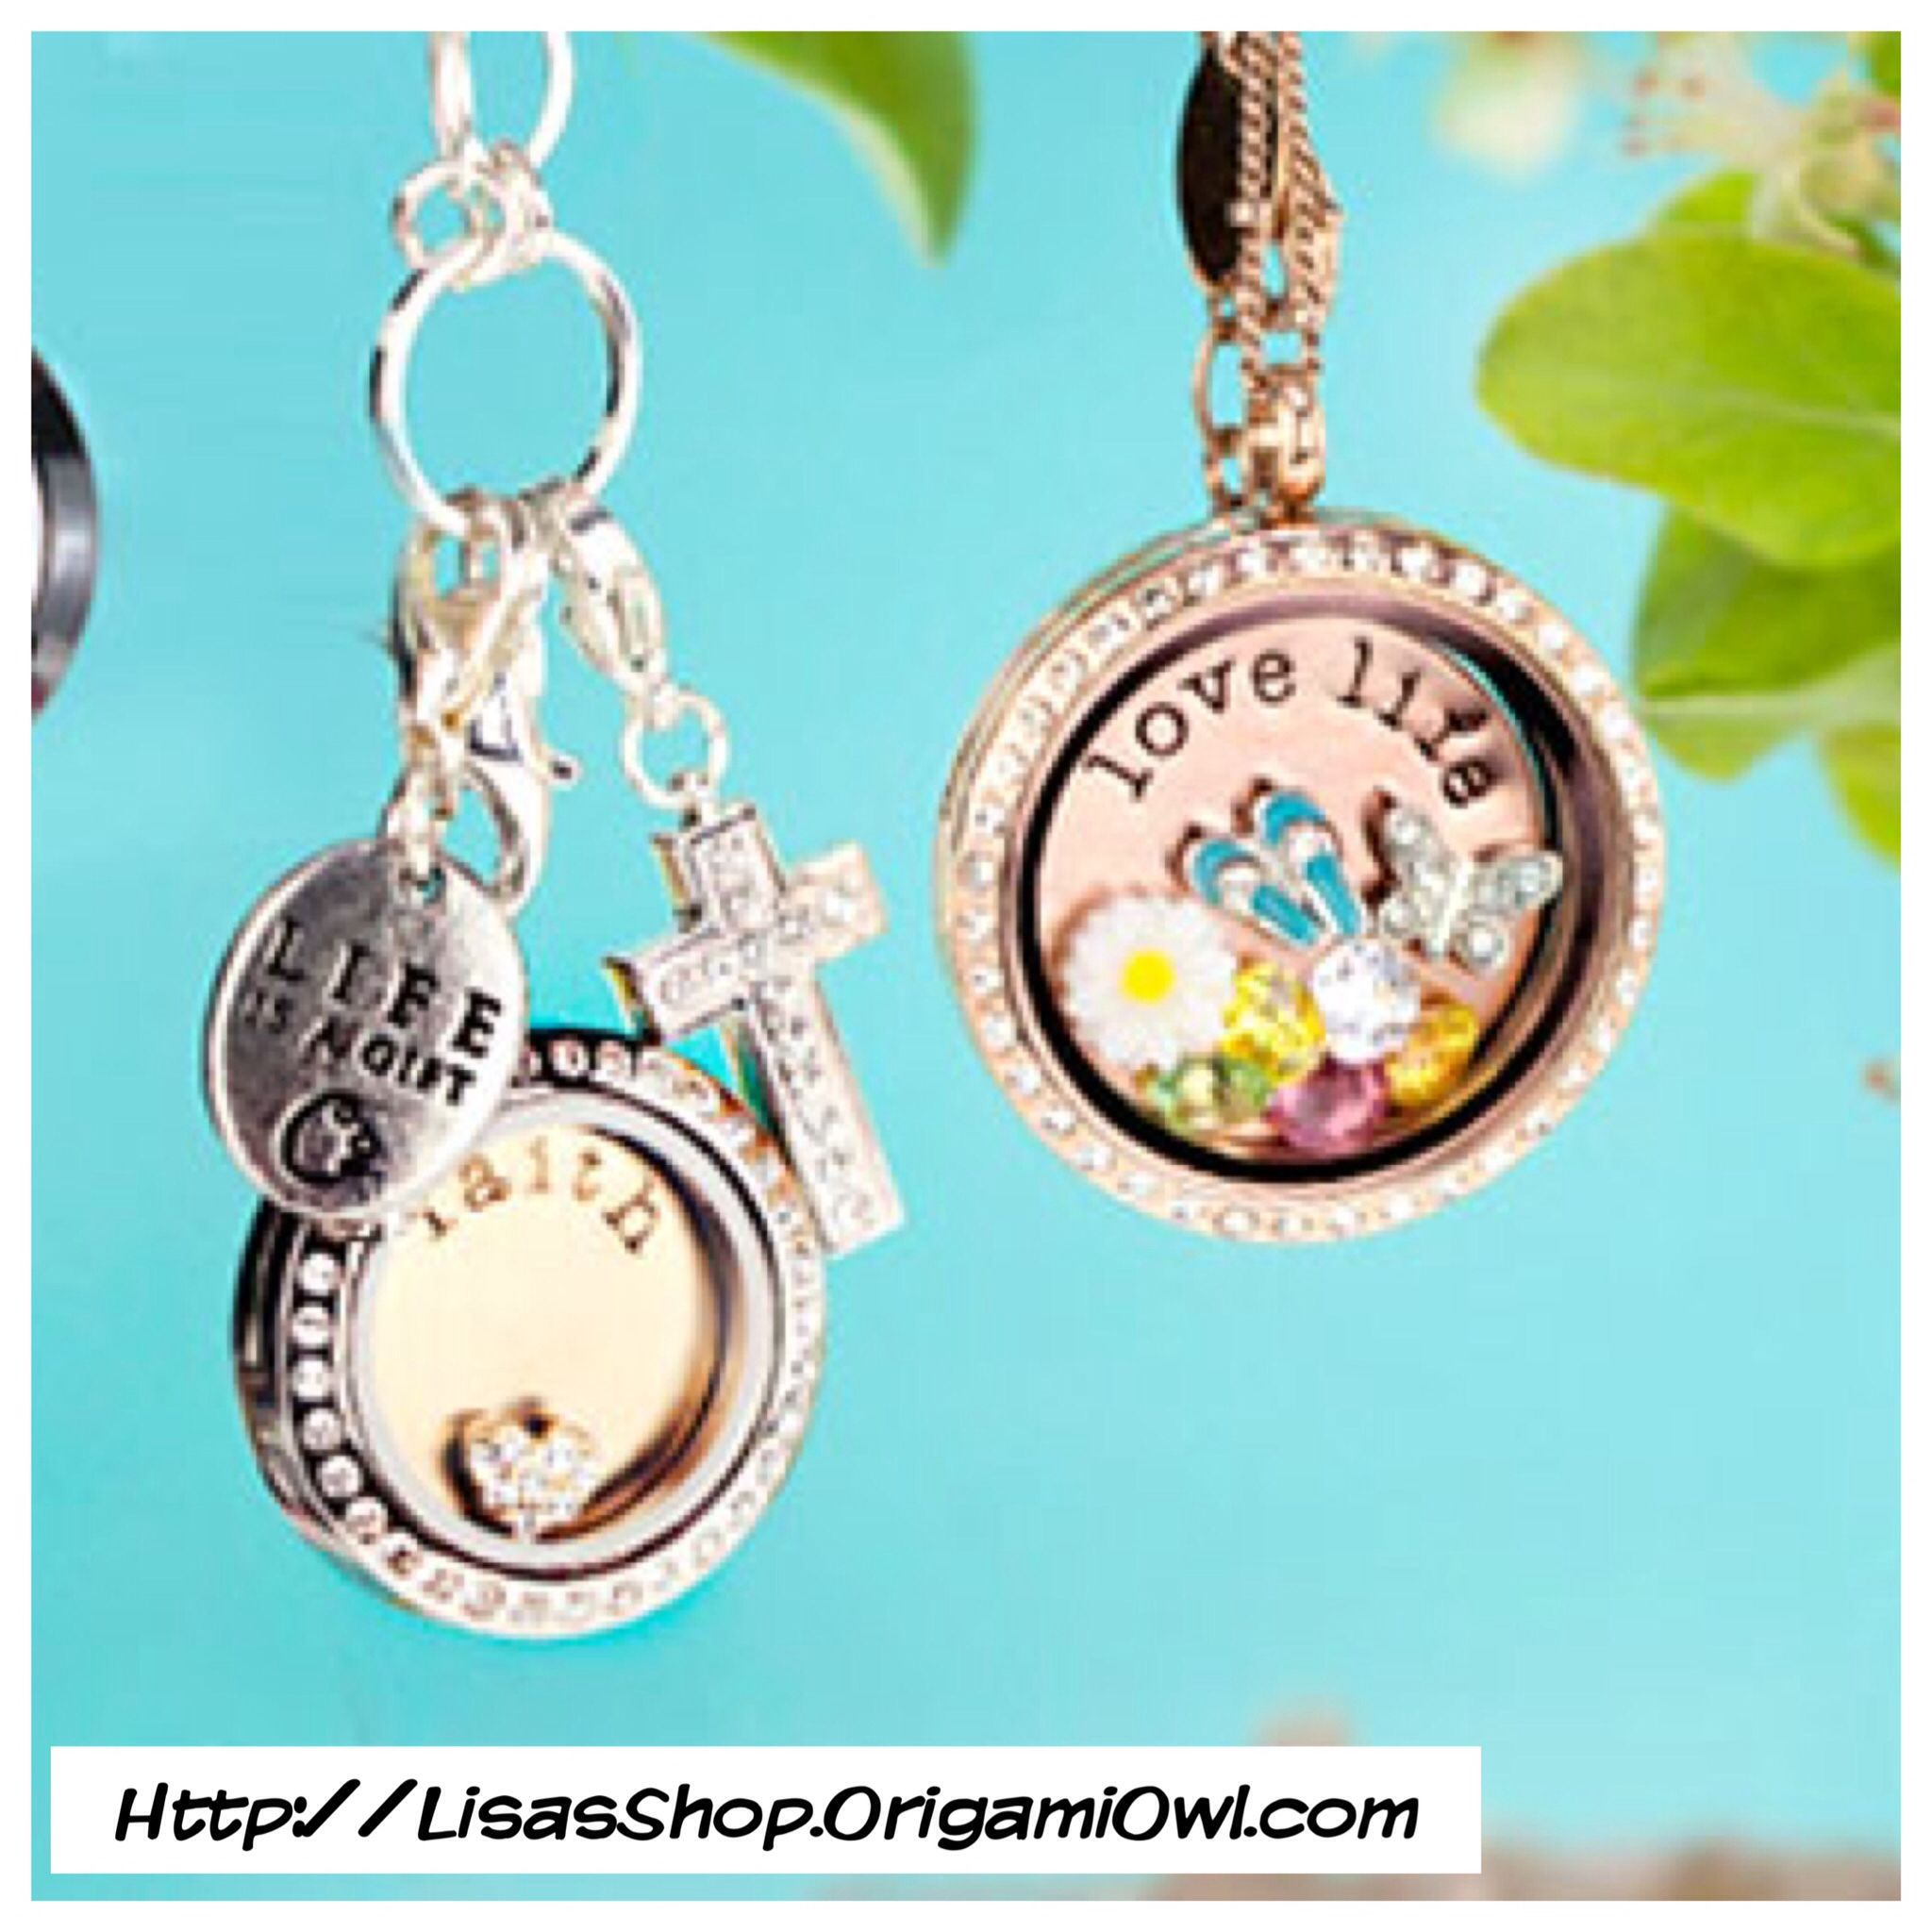 Origami Owl Lockets with Plates,Charms and Dangles  Http://LisasShop.OrigamiOwl.com